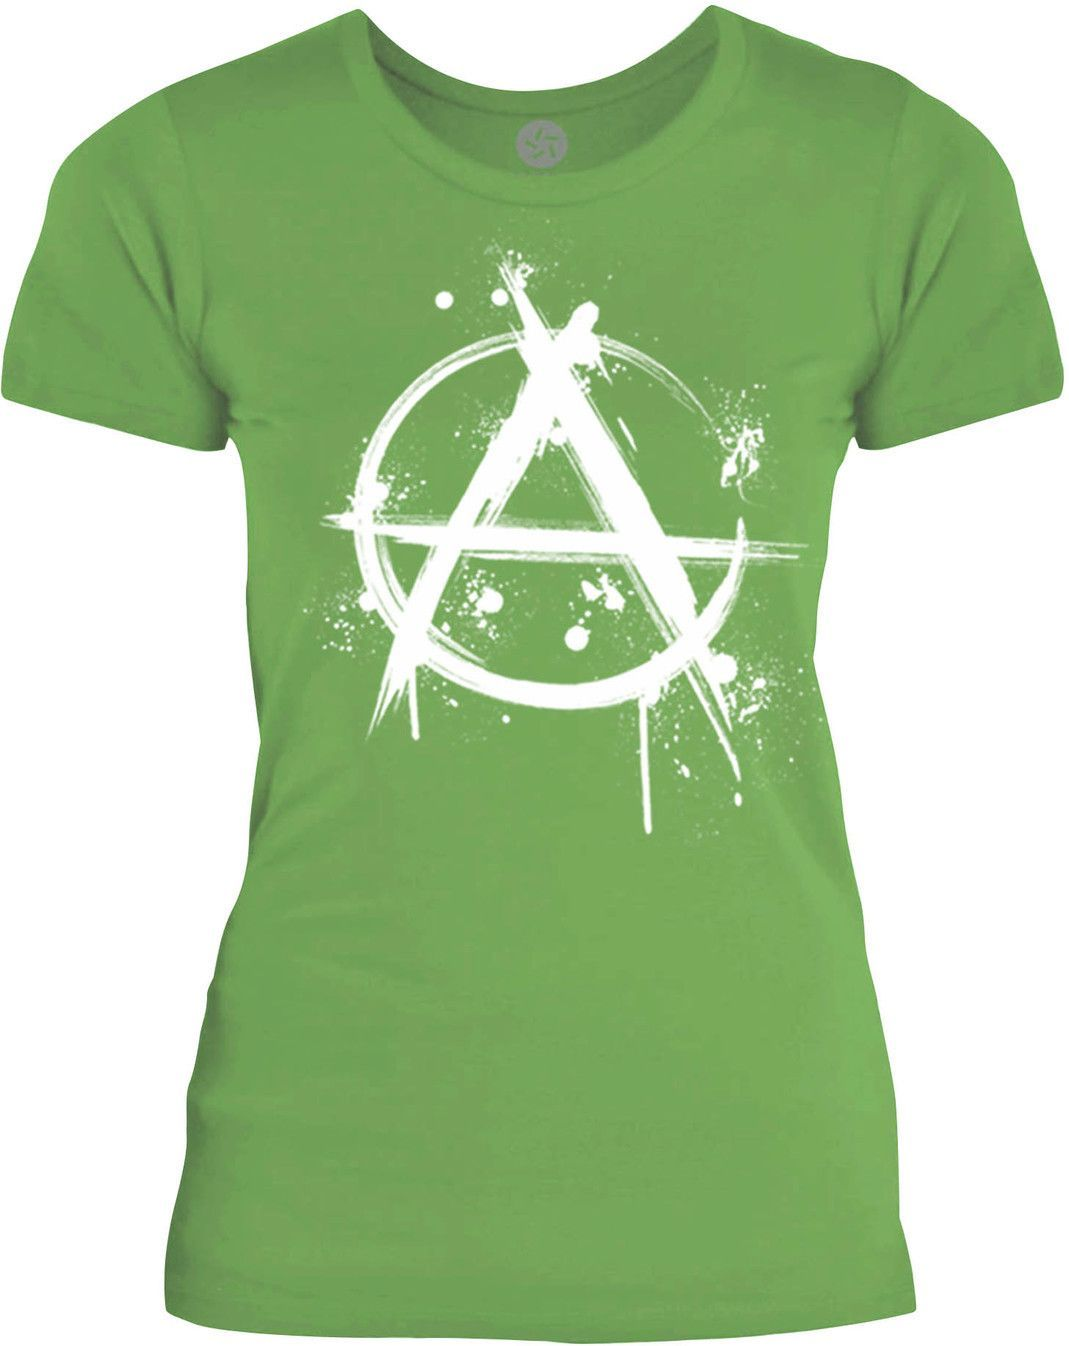 Big Texas Anarchy Graffiti (White) Womens Fine Jersey T-Shirt